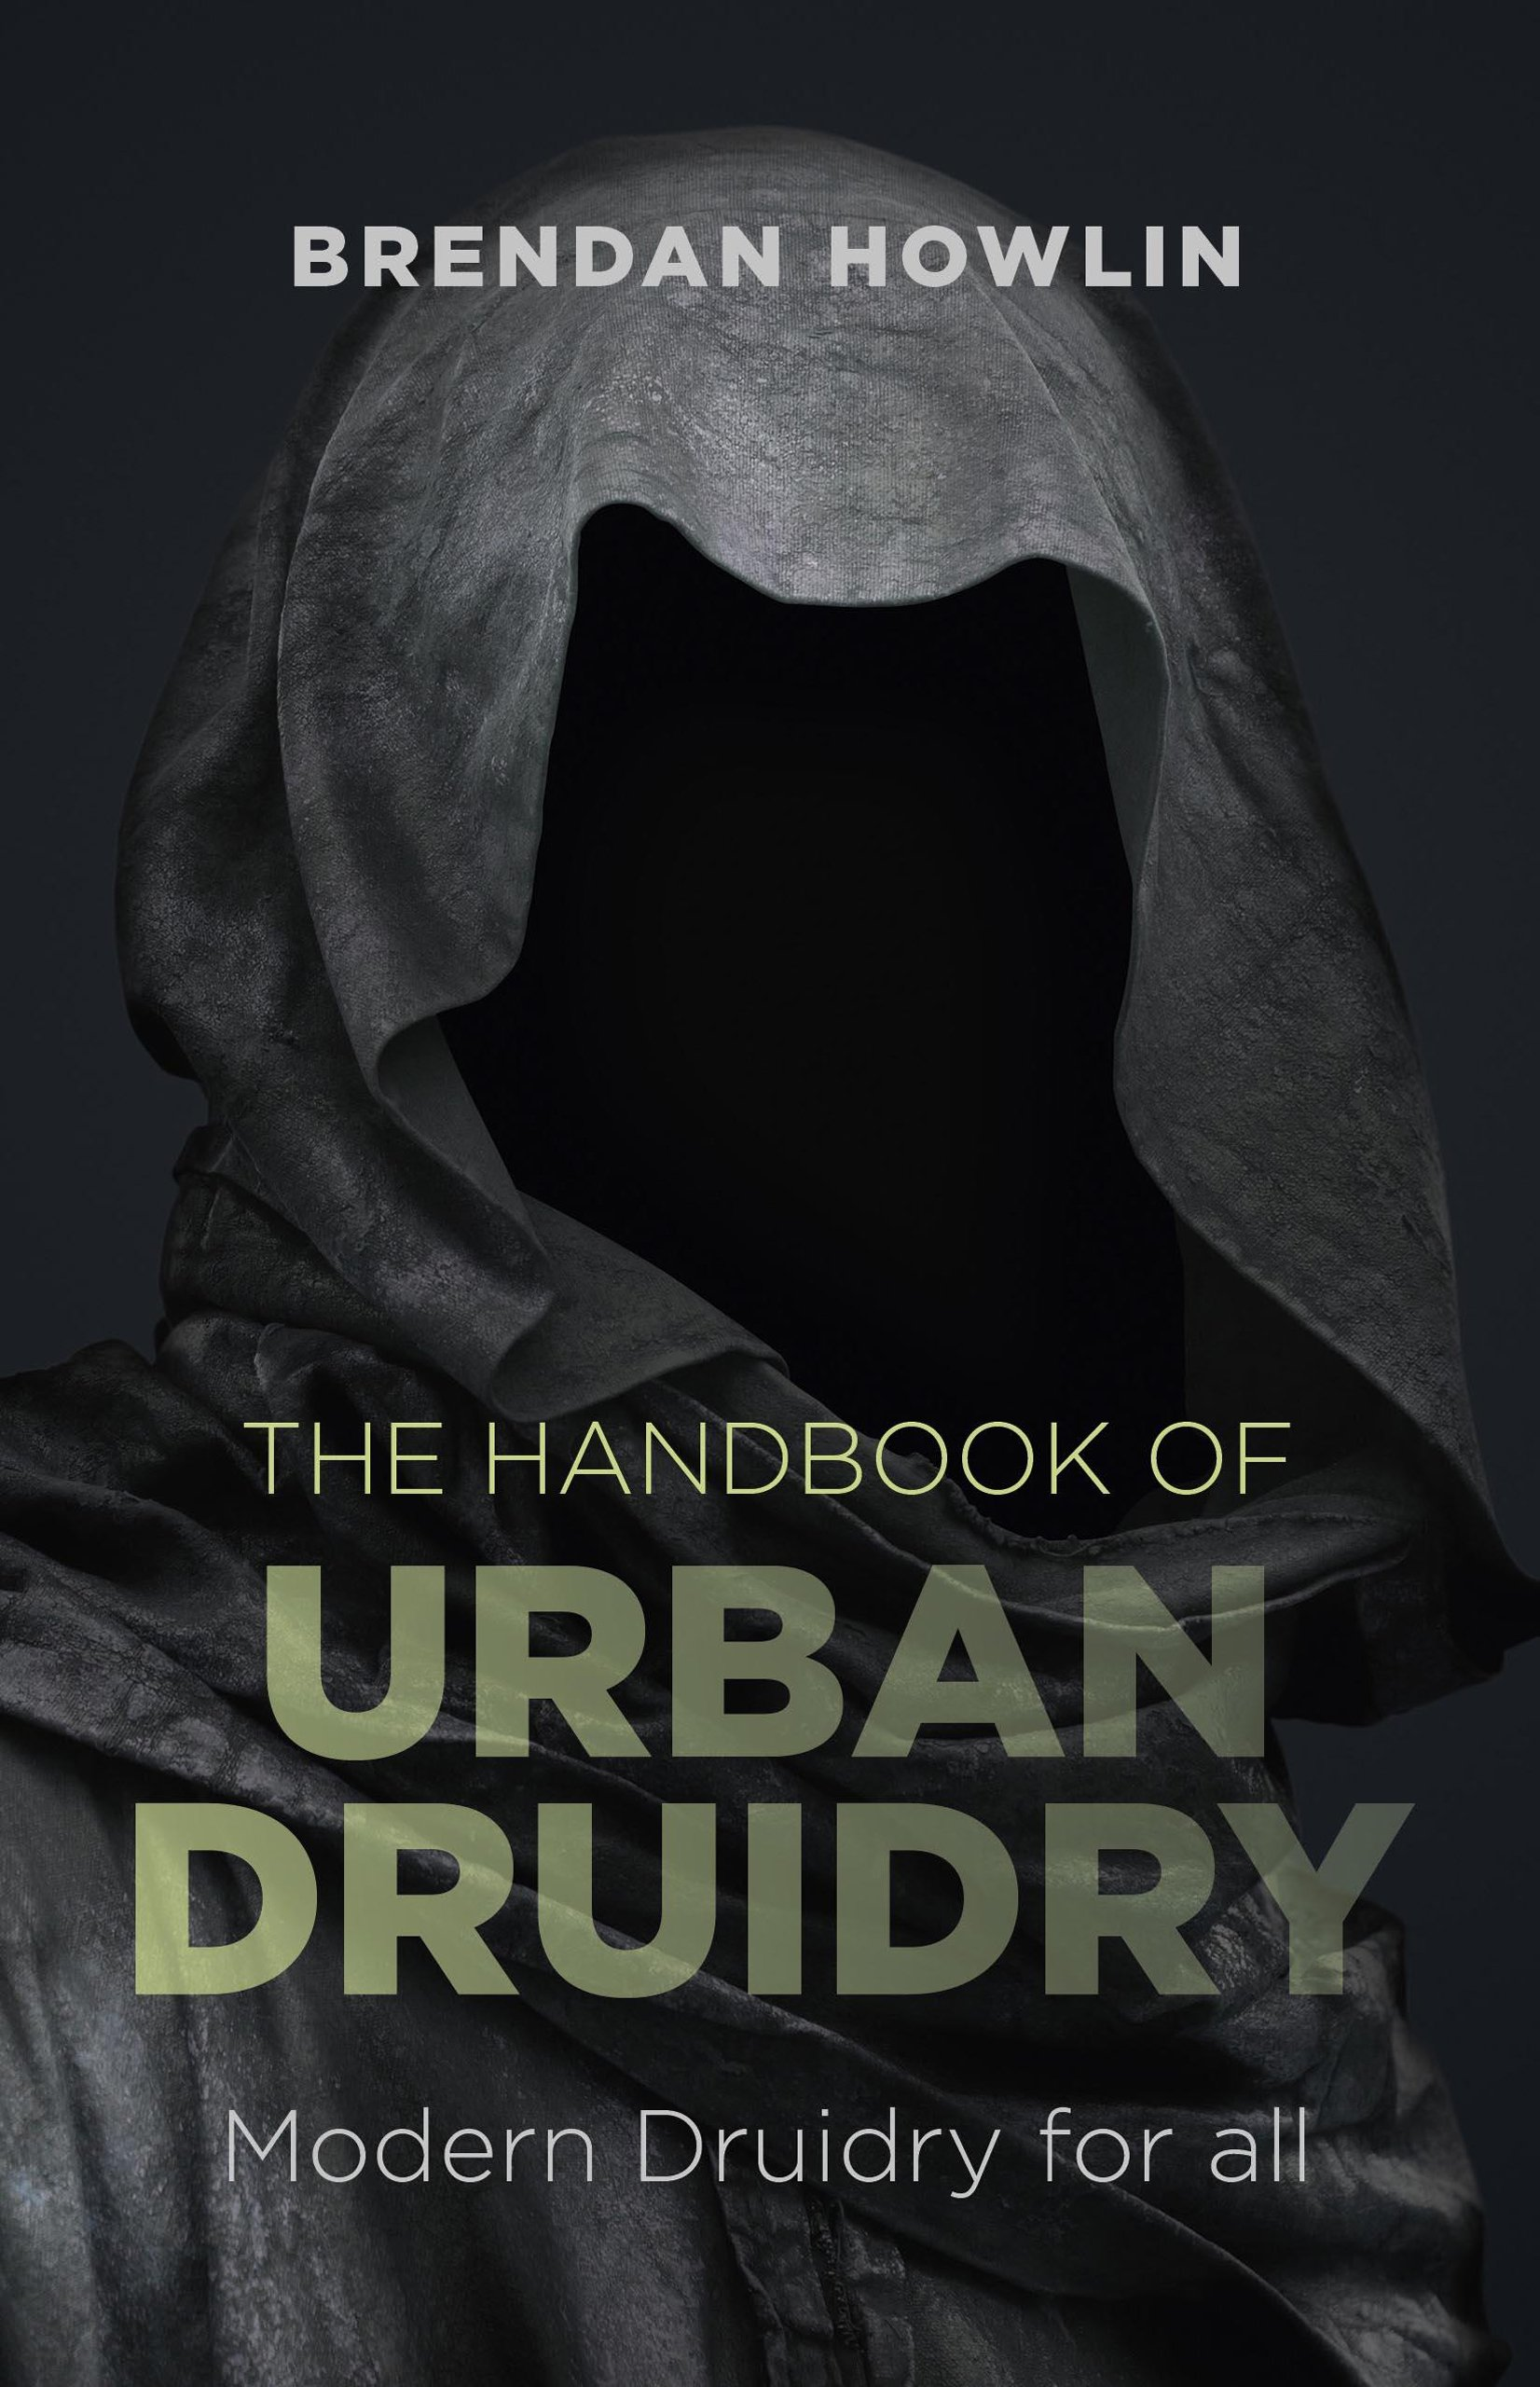 Download The Handbook of Urban Druidry: Modern Druidry for All ebook